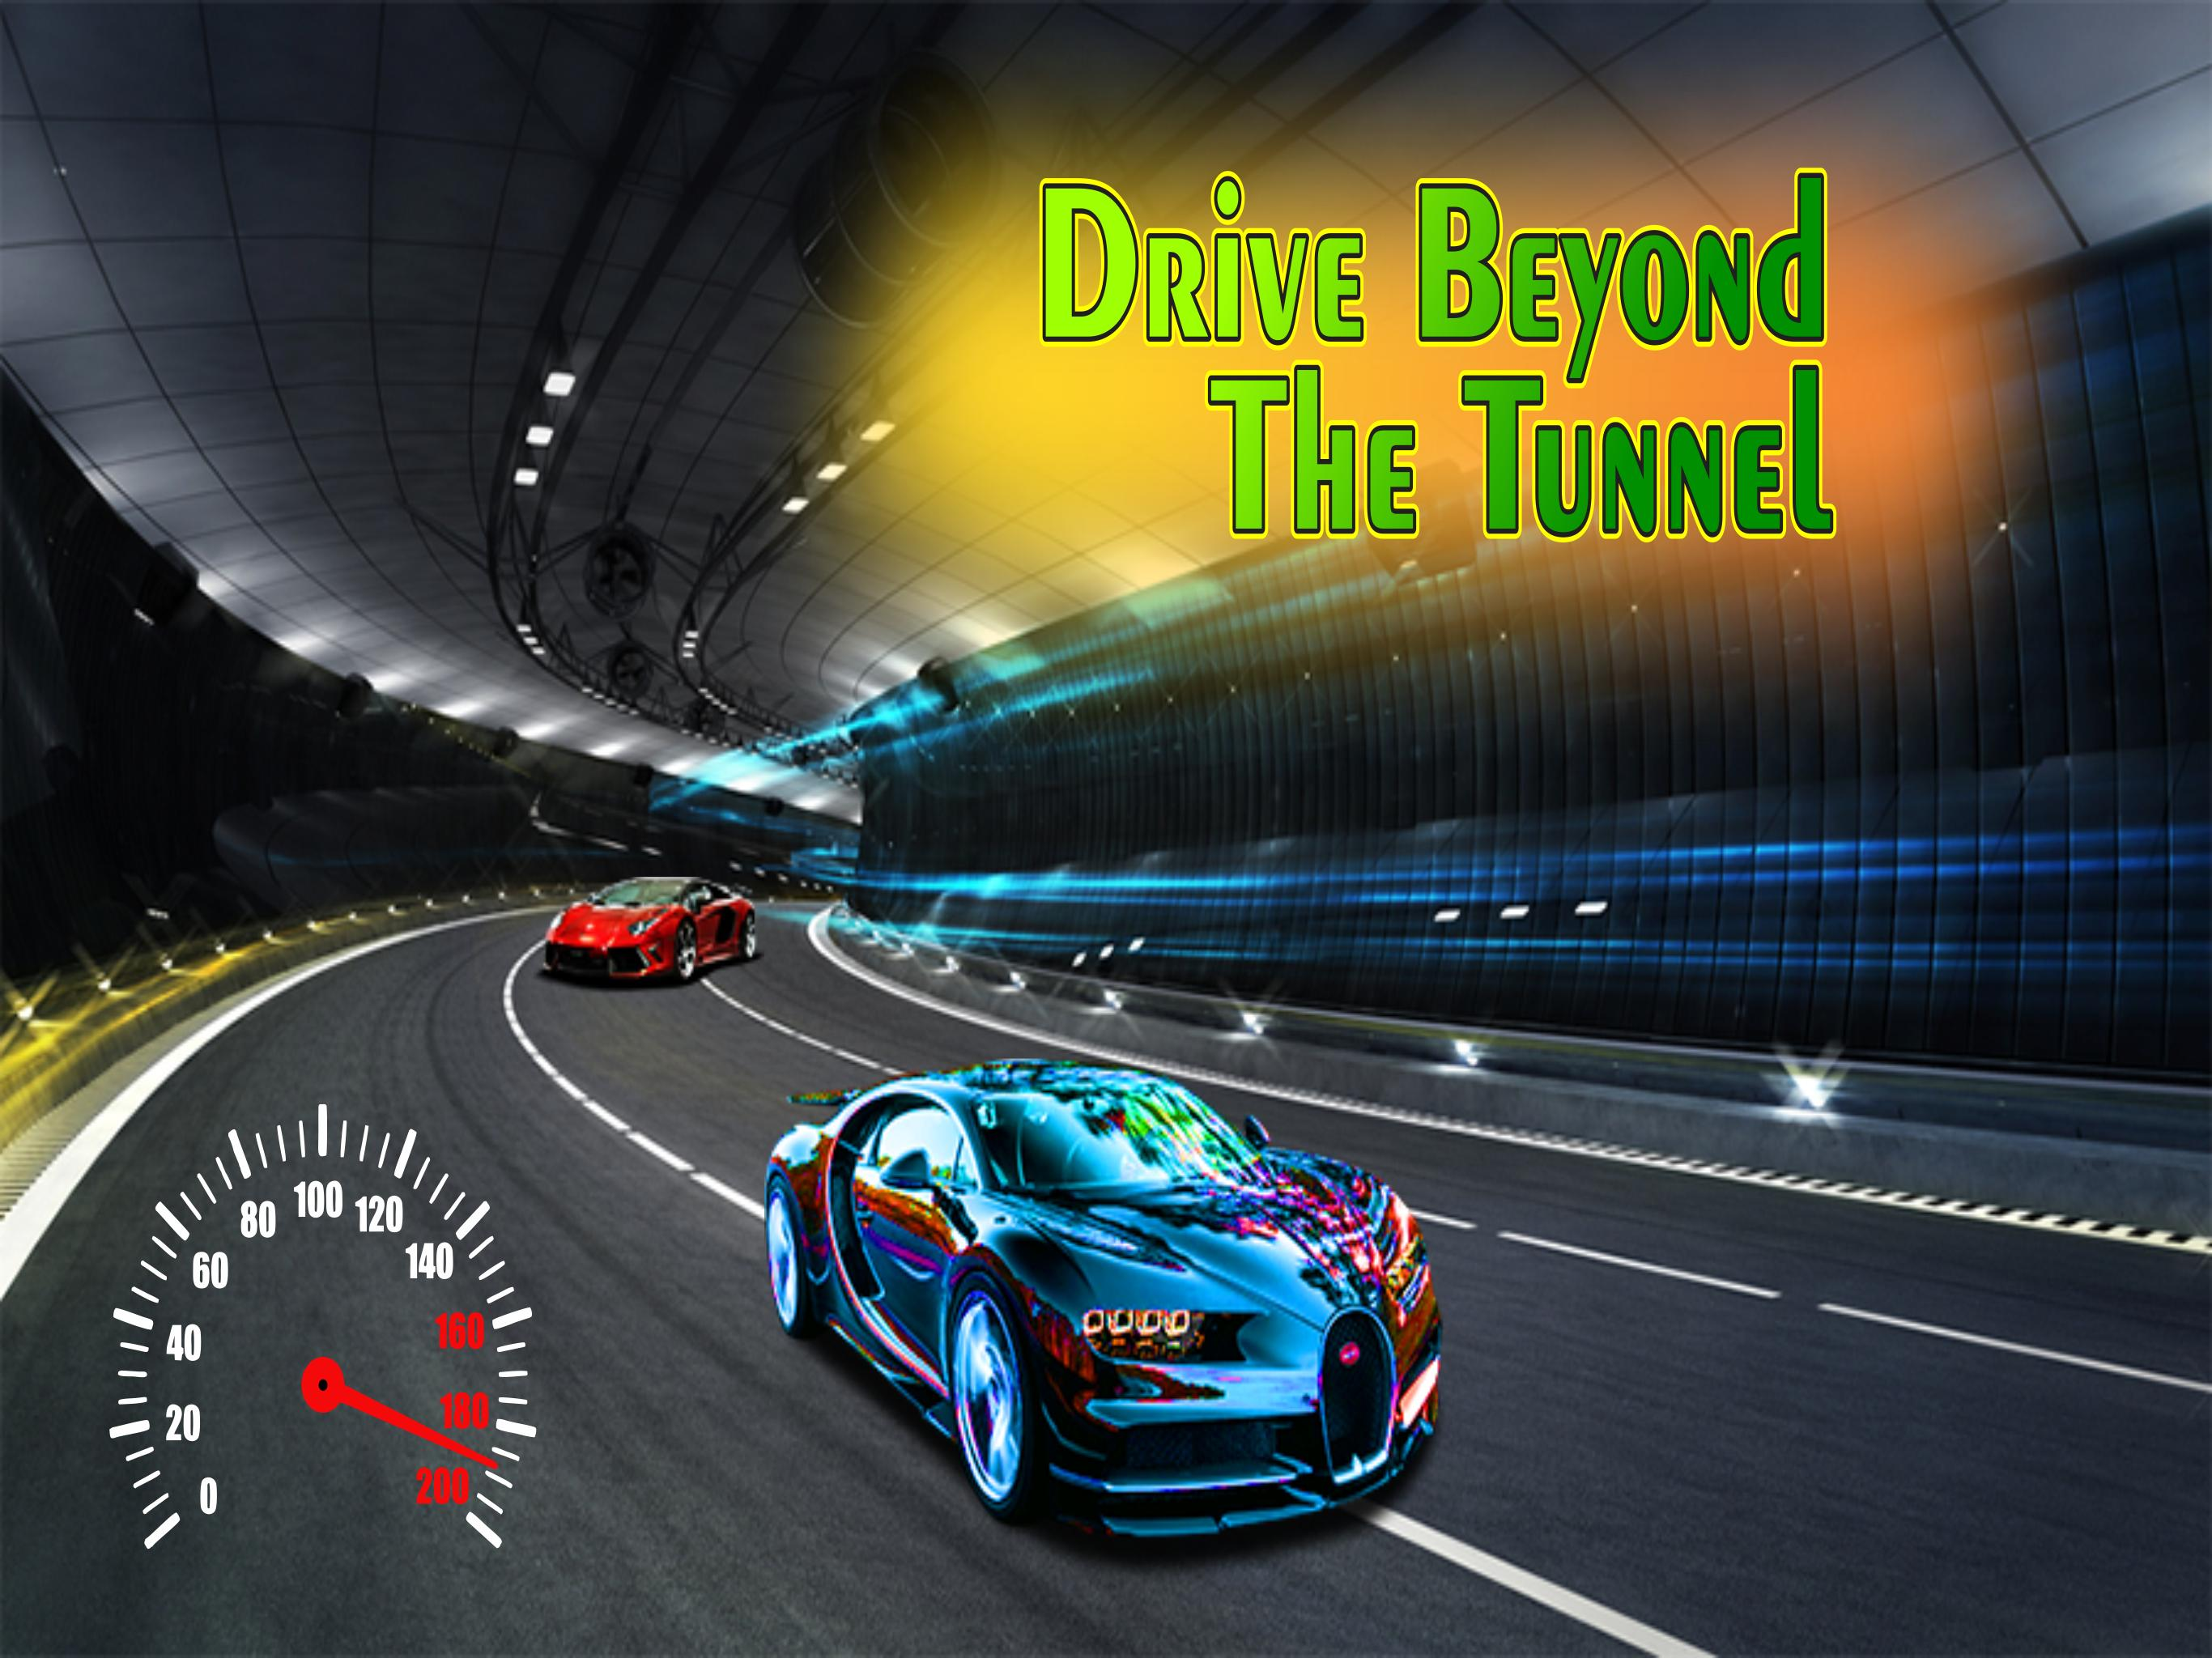 Sports Car Drag Racing Games Street Racing Cars For Android Apk Download